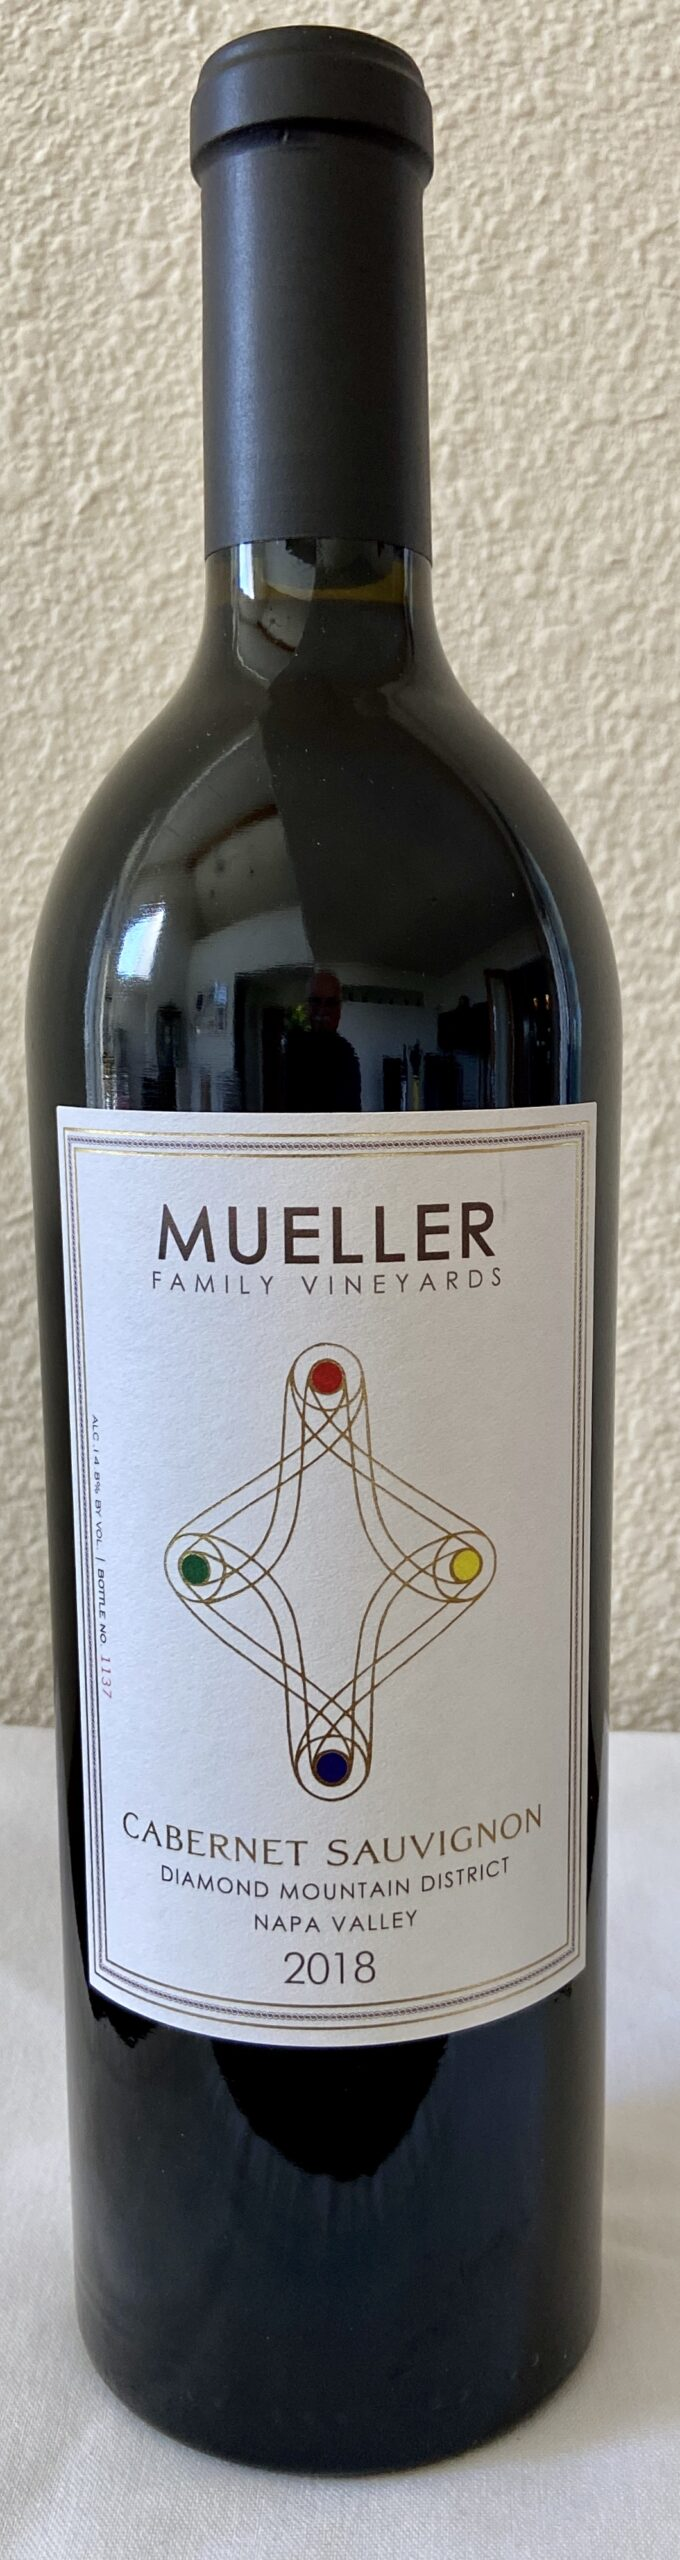 2018 Mueller Family Vineyards Cabernet Sauvignon